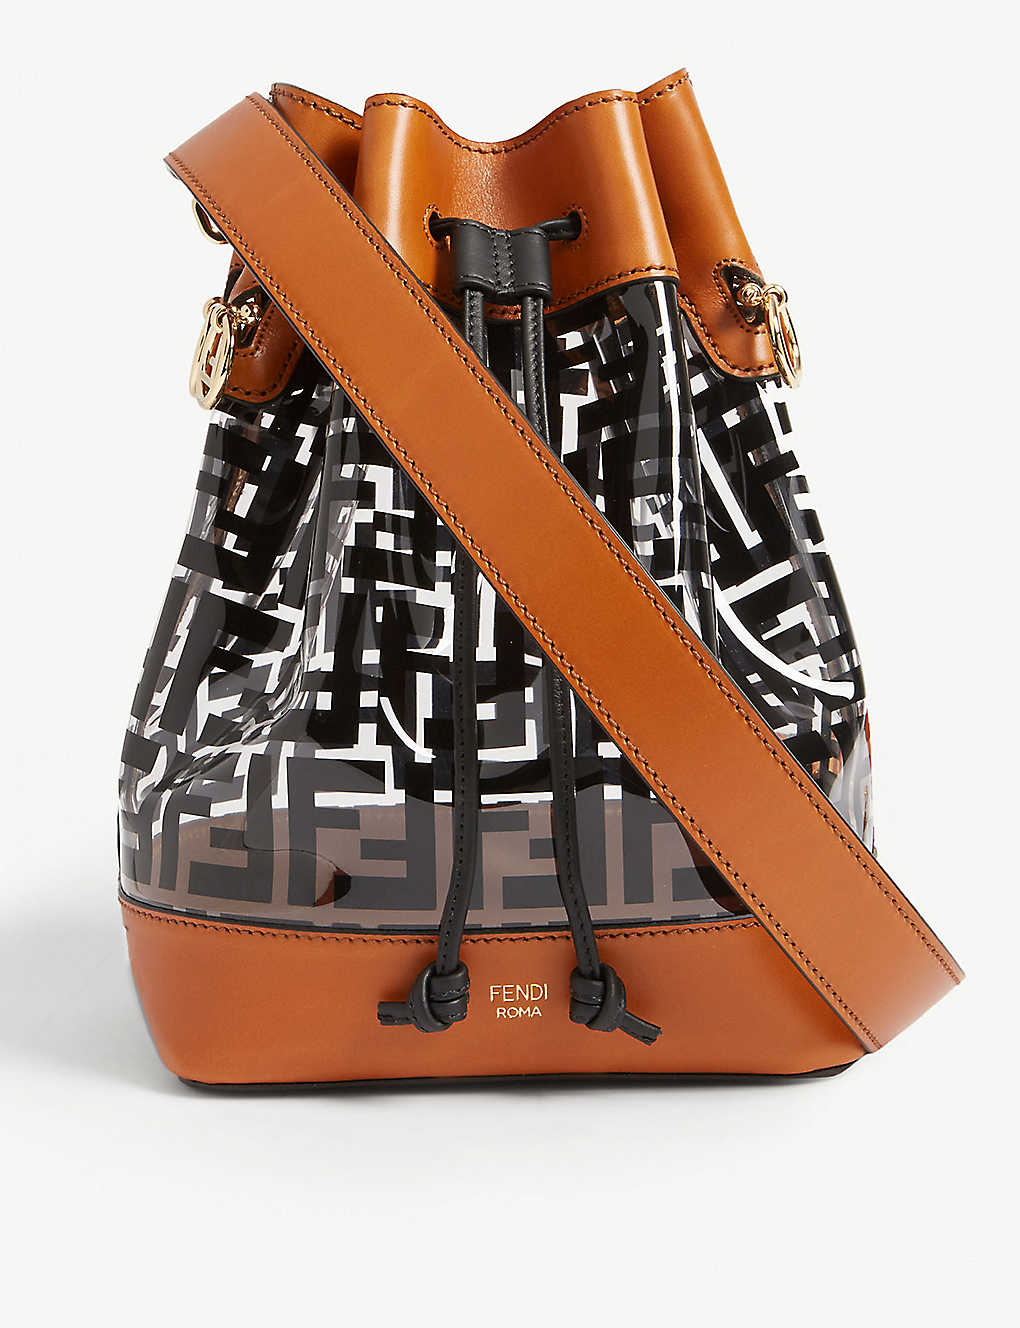 FENDI: PVC medium bucket bag